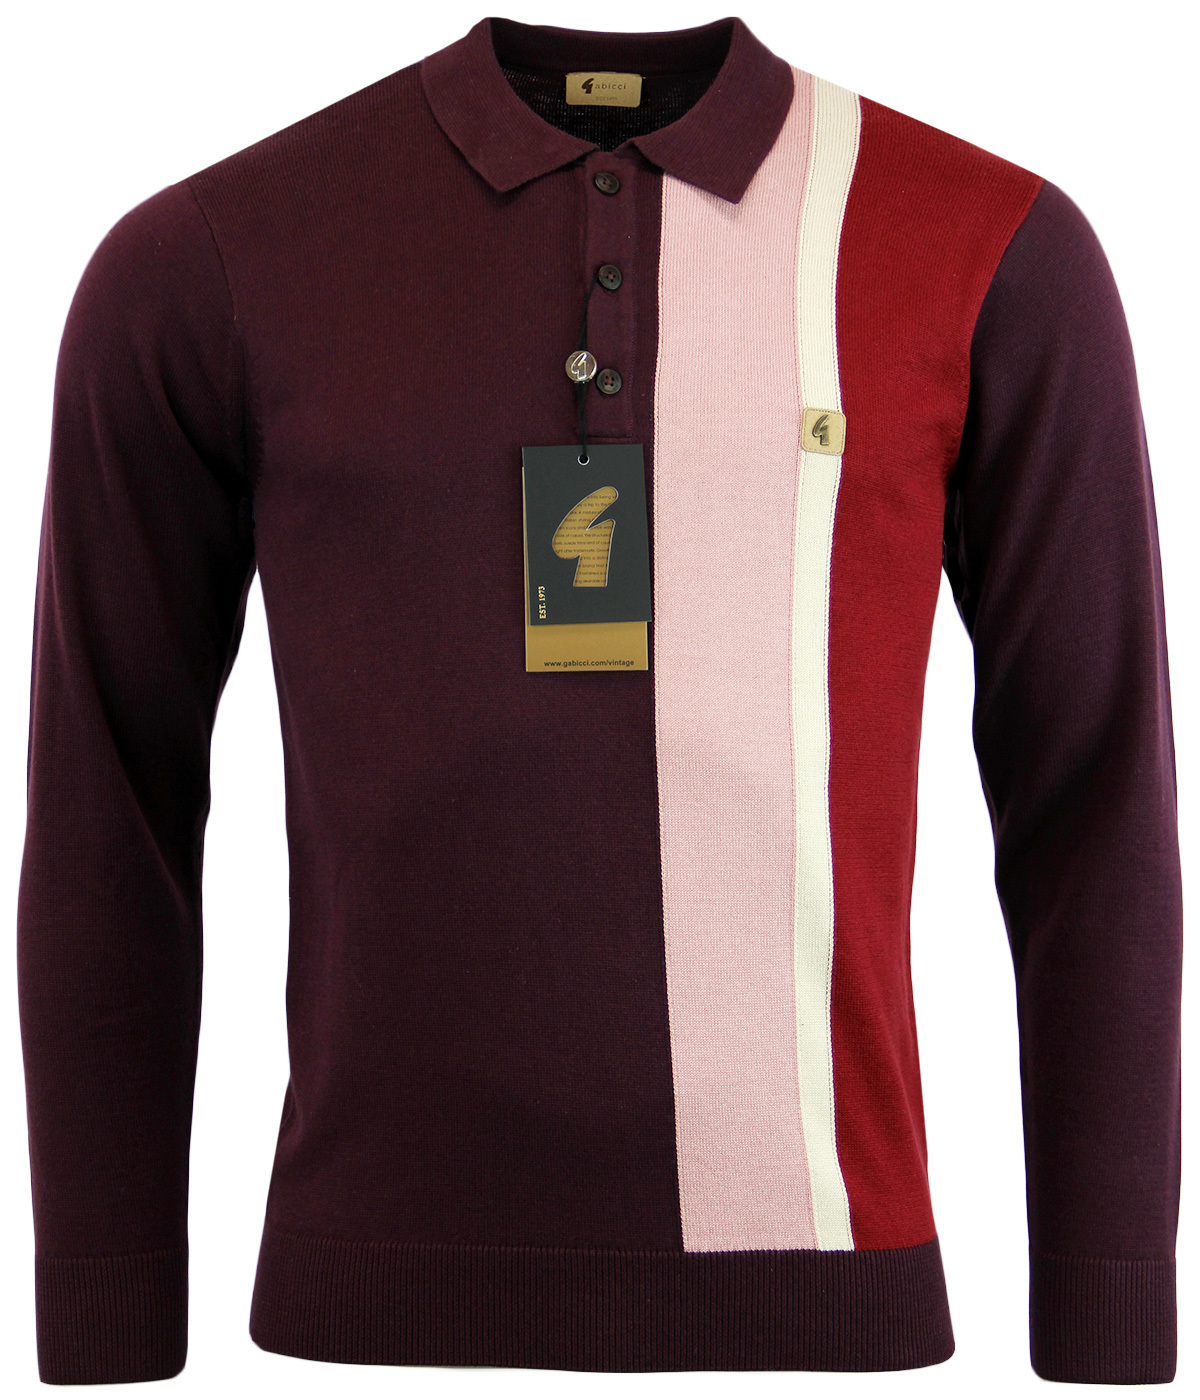 GABICCI VINTAGE 60s Mod Racing Stripe Knitted Polo